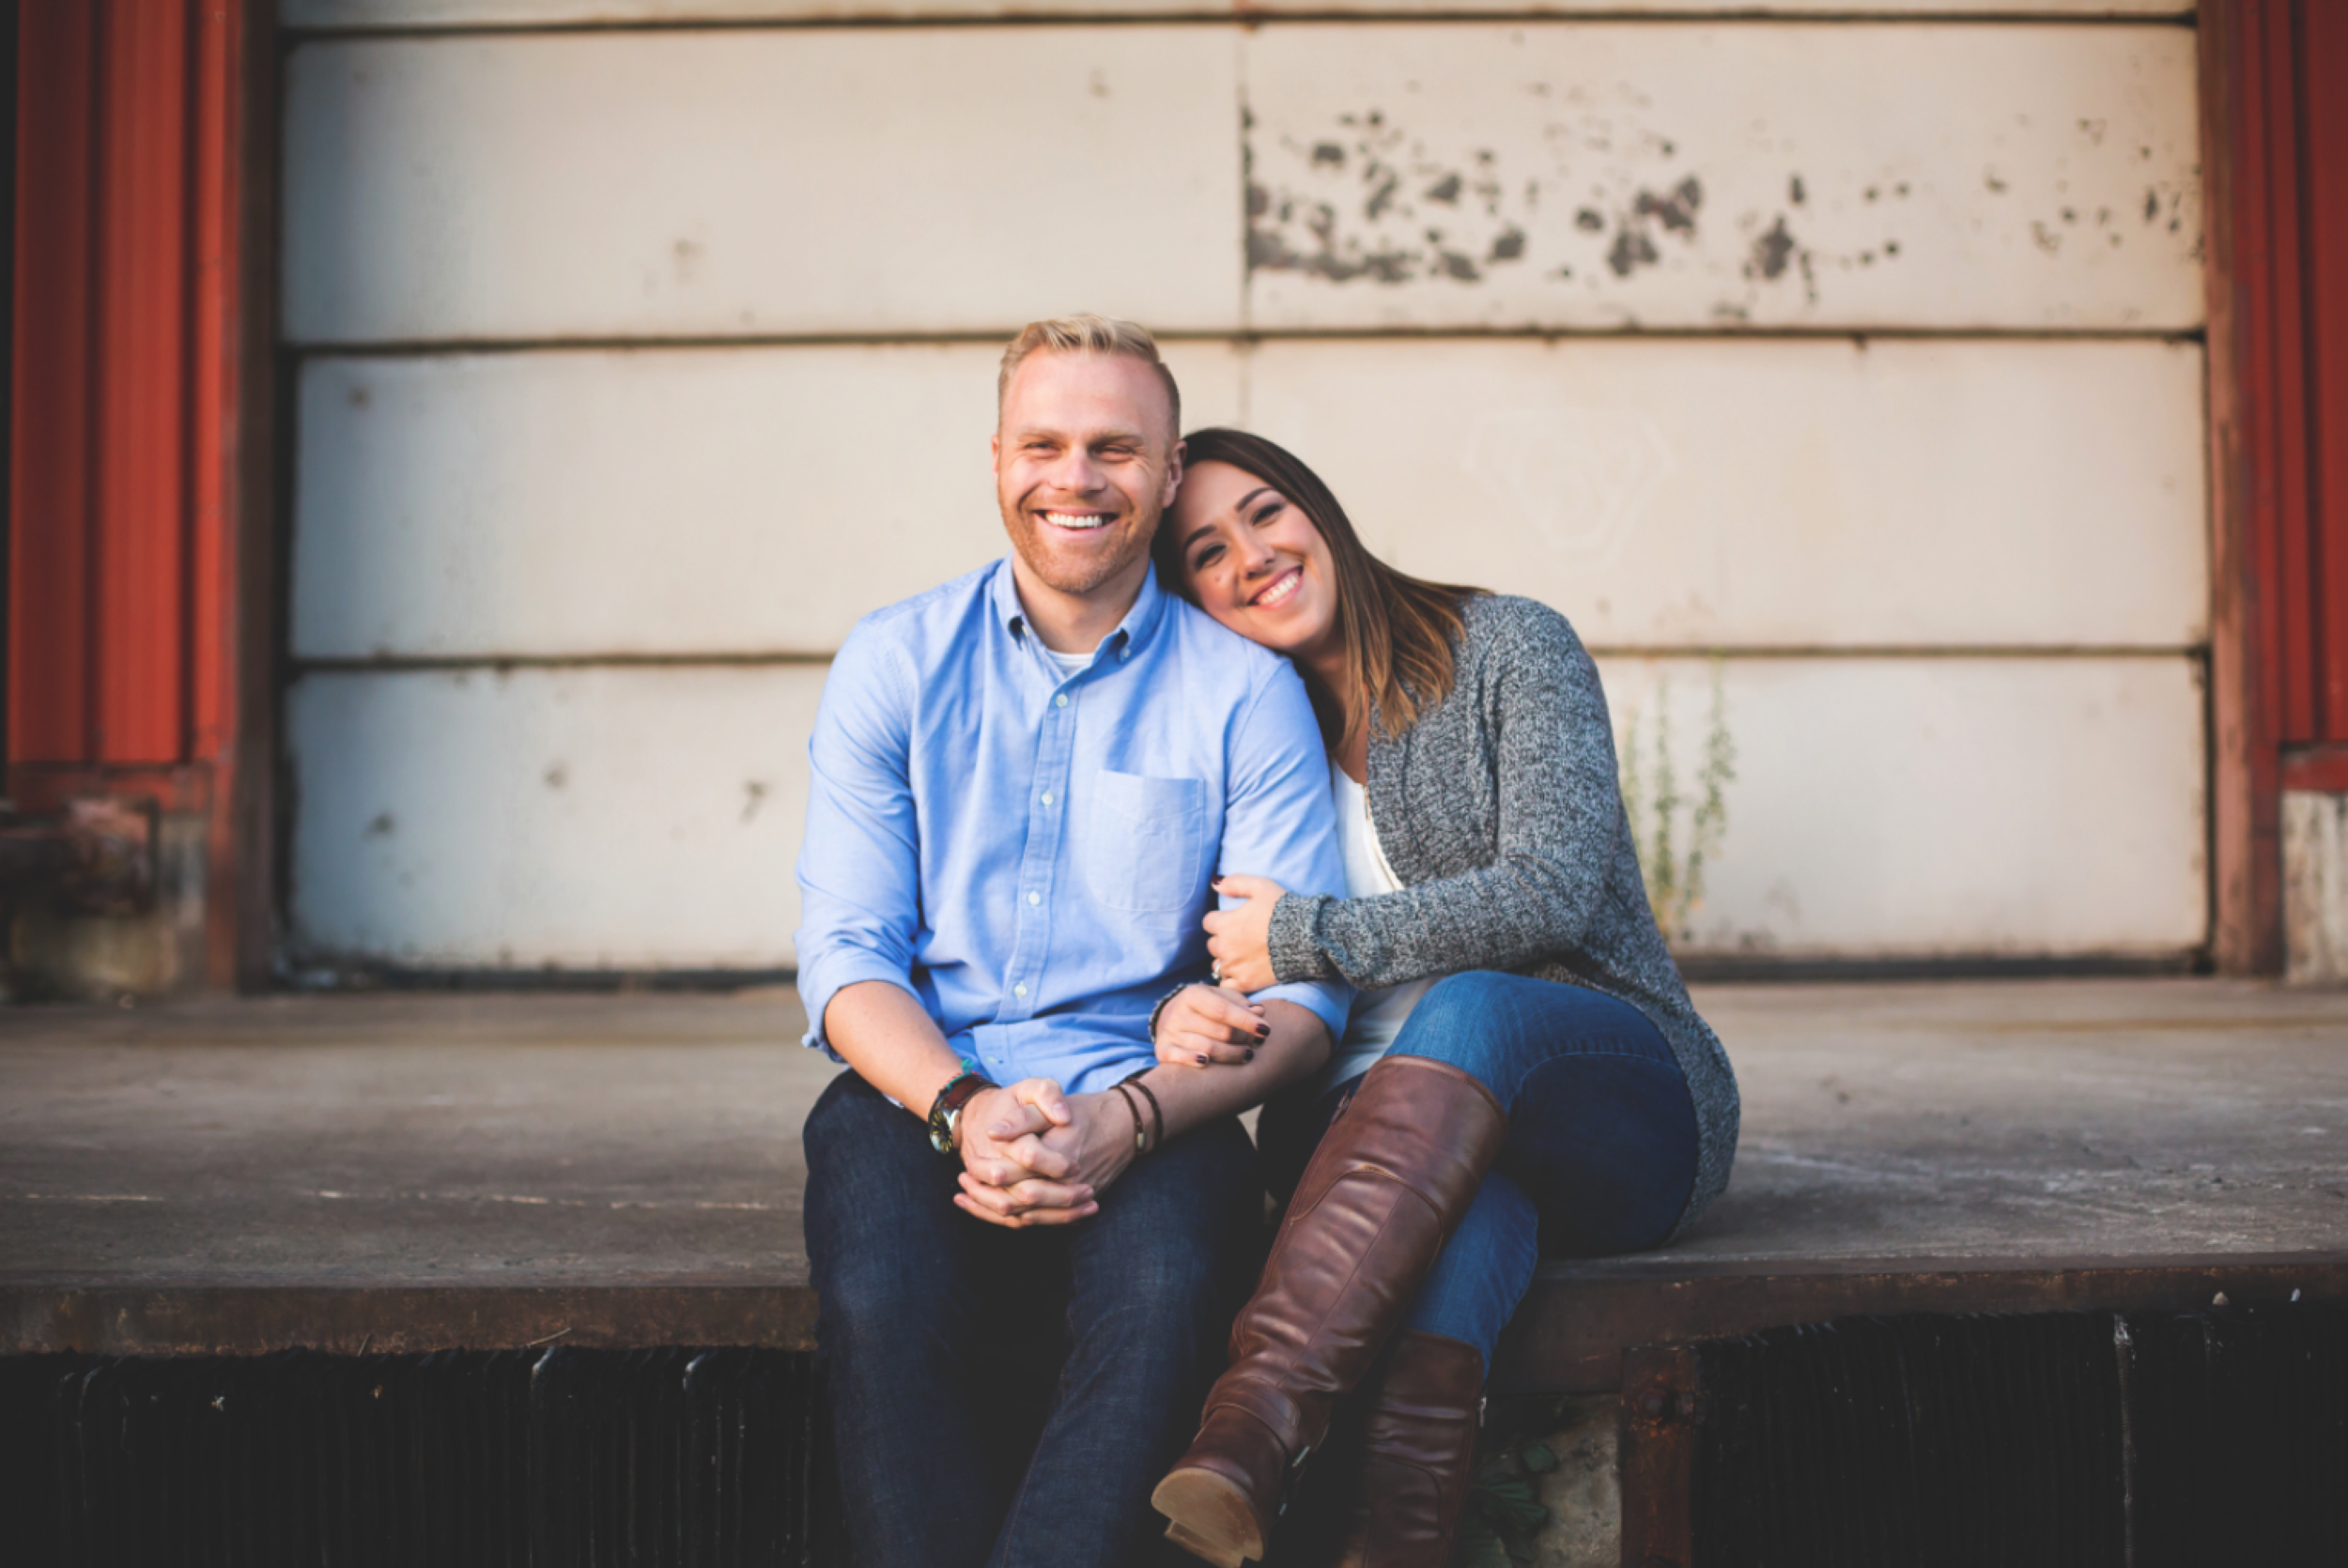 Engagement-Session-Downtown-Hamilton-Burlington-Oakville-Niagara-Toronto-Wedding-Photographer-Engaged-Photography-Waterfront-Urban-HamOnt-Engaged-Golden-Hour-Moments-by-Lauren-Photo-Image-6.png